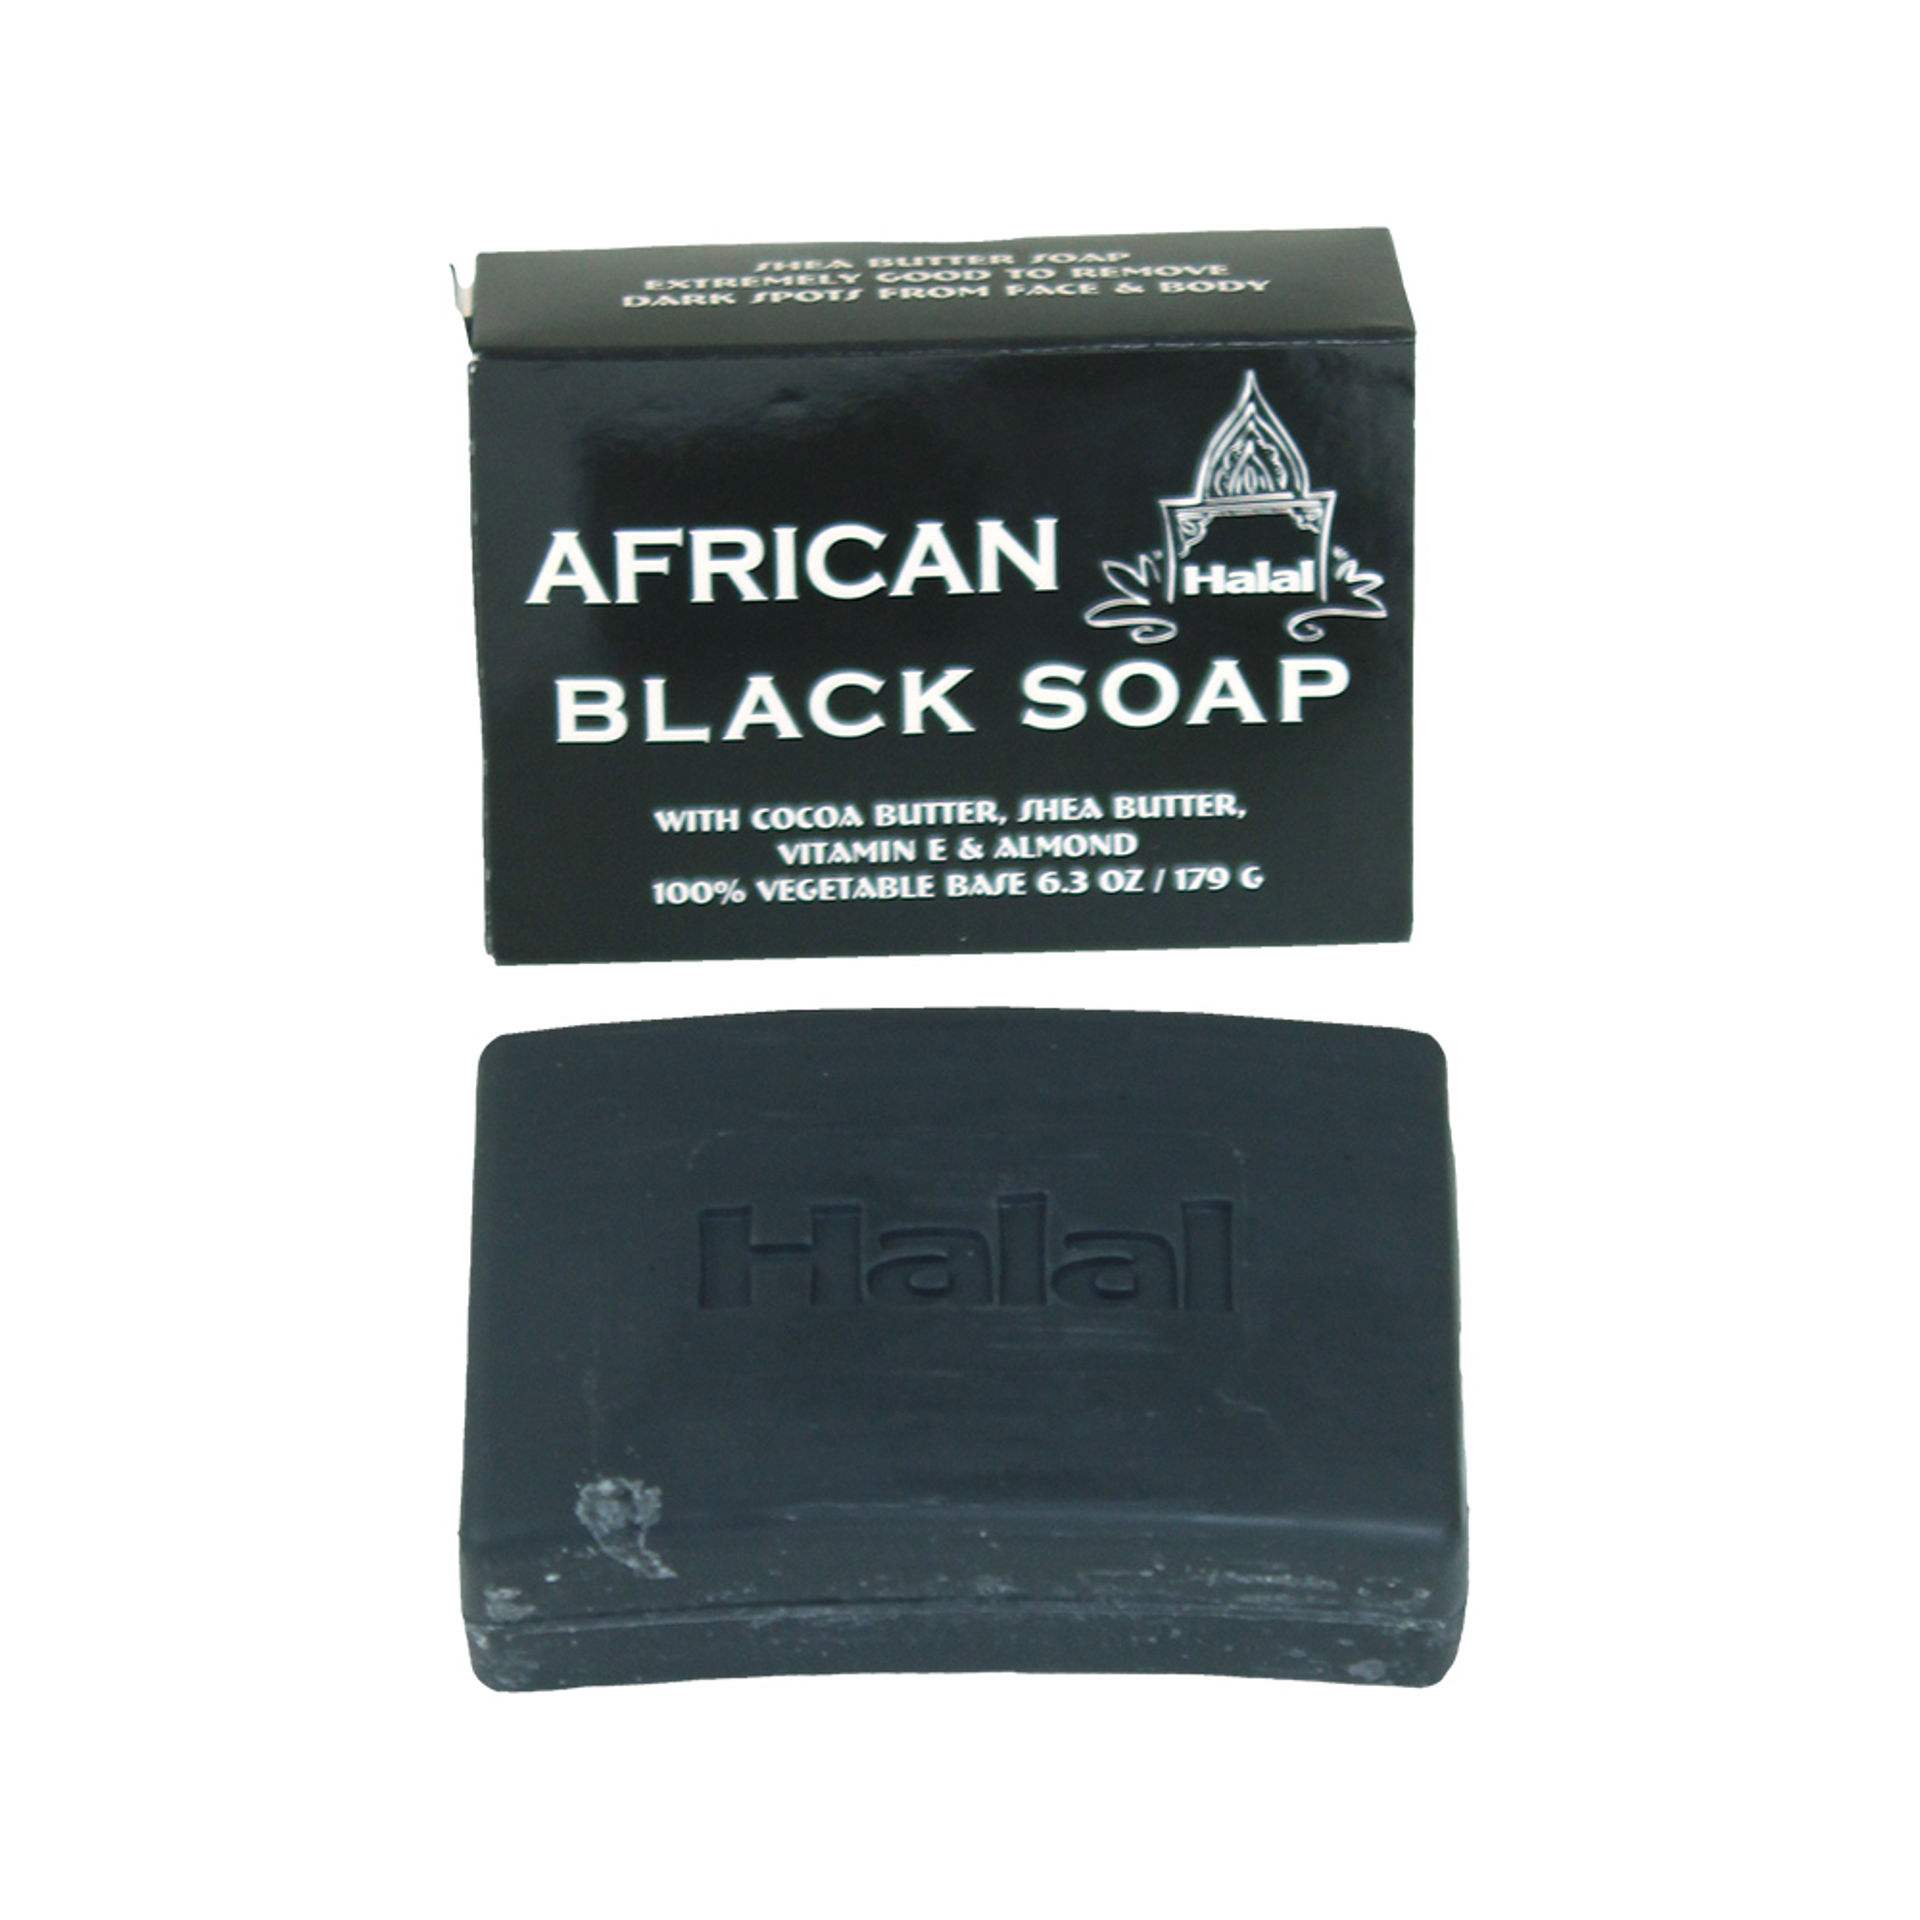 Picture of Black Soap & Shea Butter Soap - 6.3 oz.